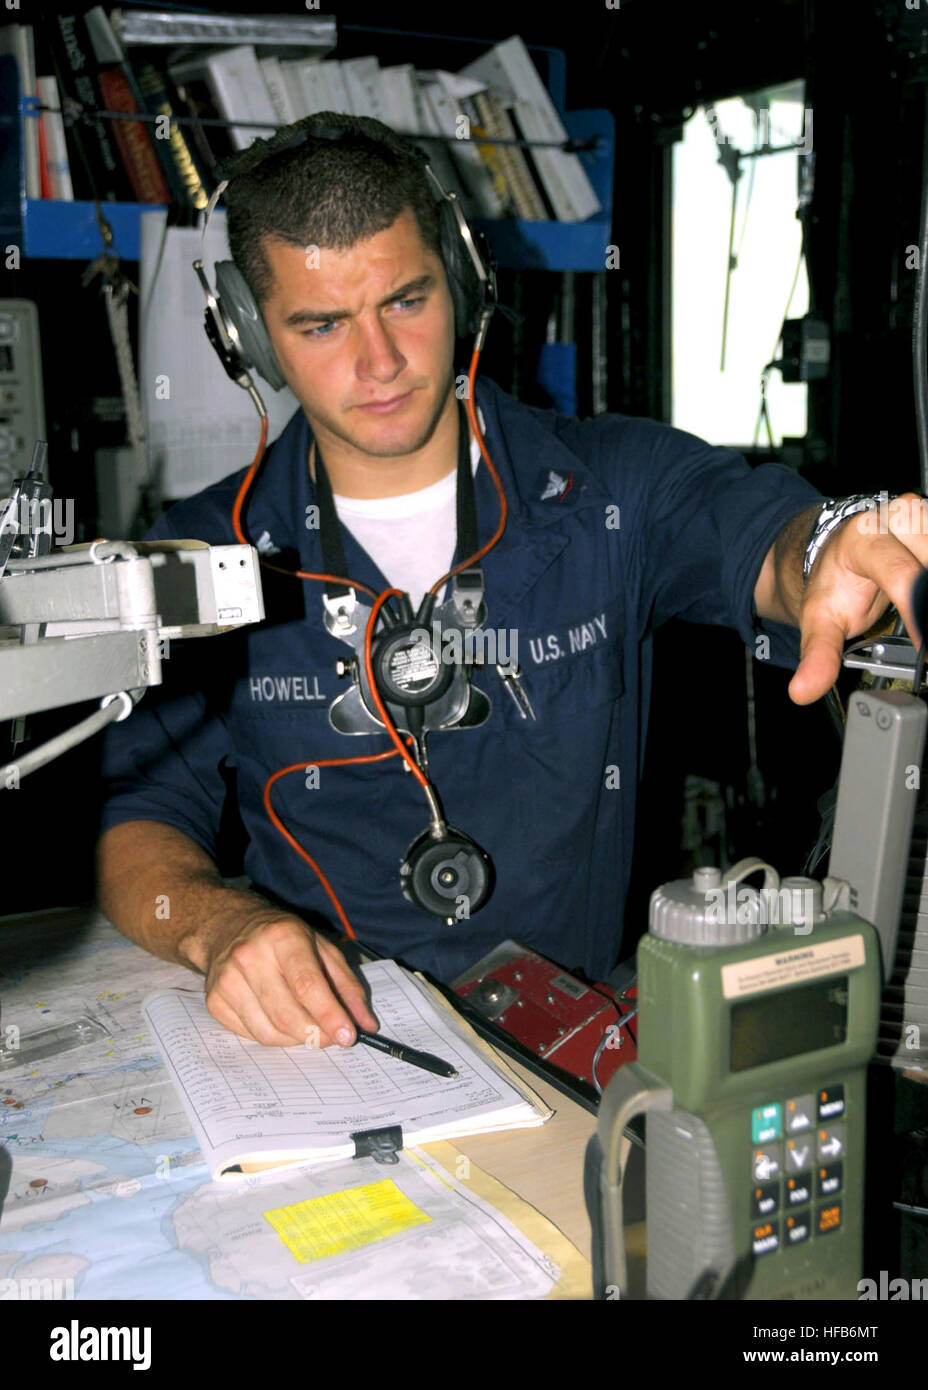 us navy quartermaster 3rd class russell j howell checks the reading from a global positioning system aboard uss harpers ferry lsd 49 may 11 2008